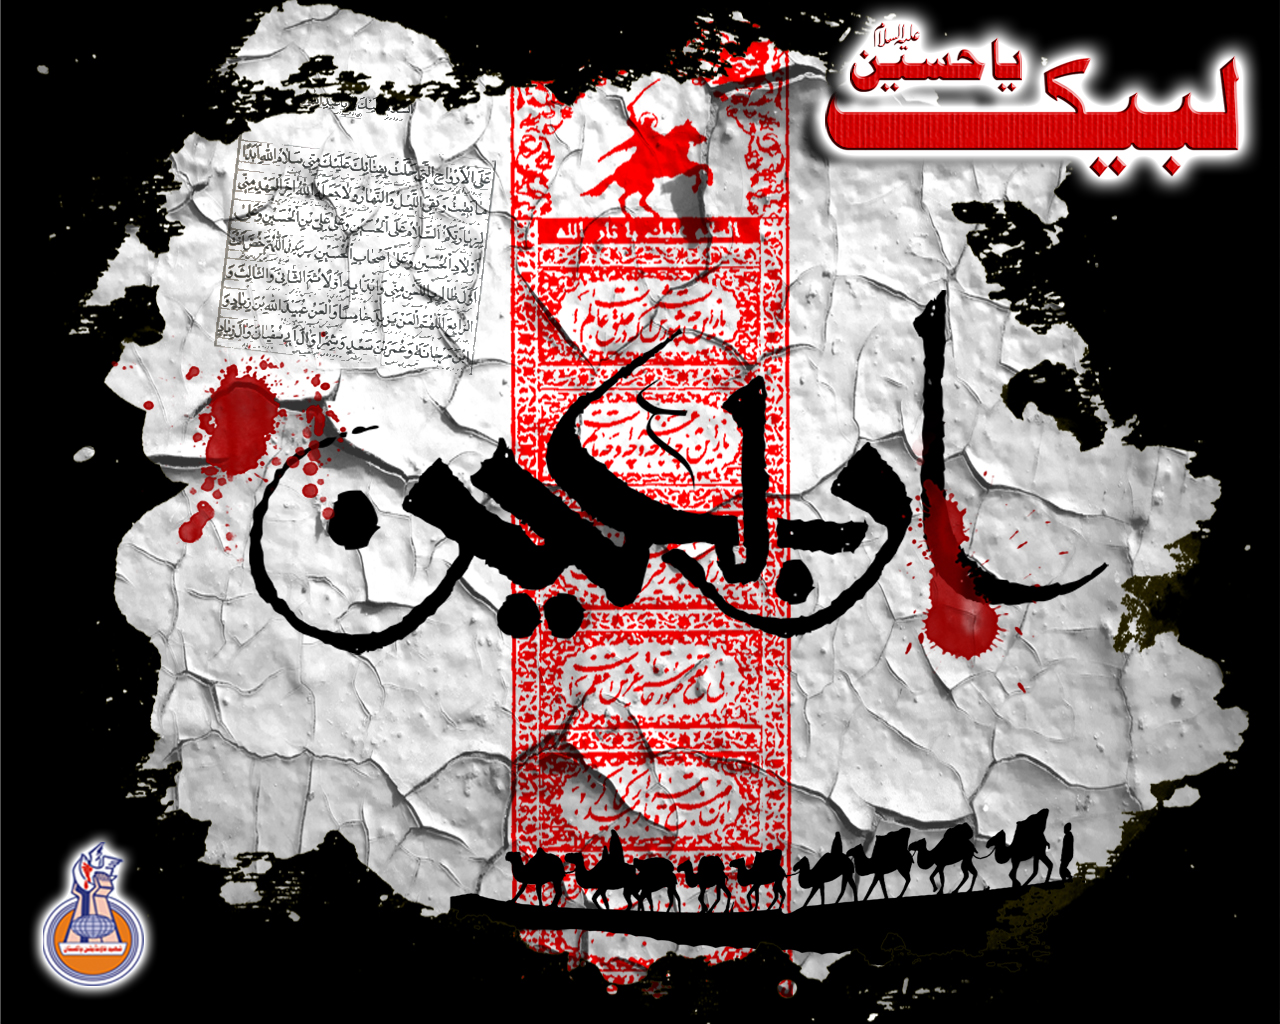 Shaheed Foundation Pakistan Arbaeen 2013 Wallpaper